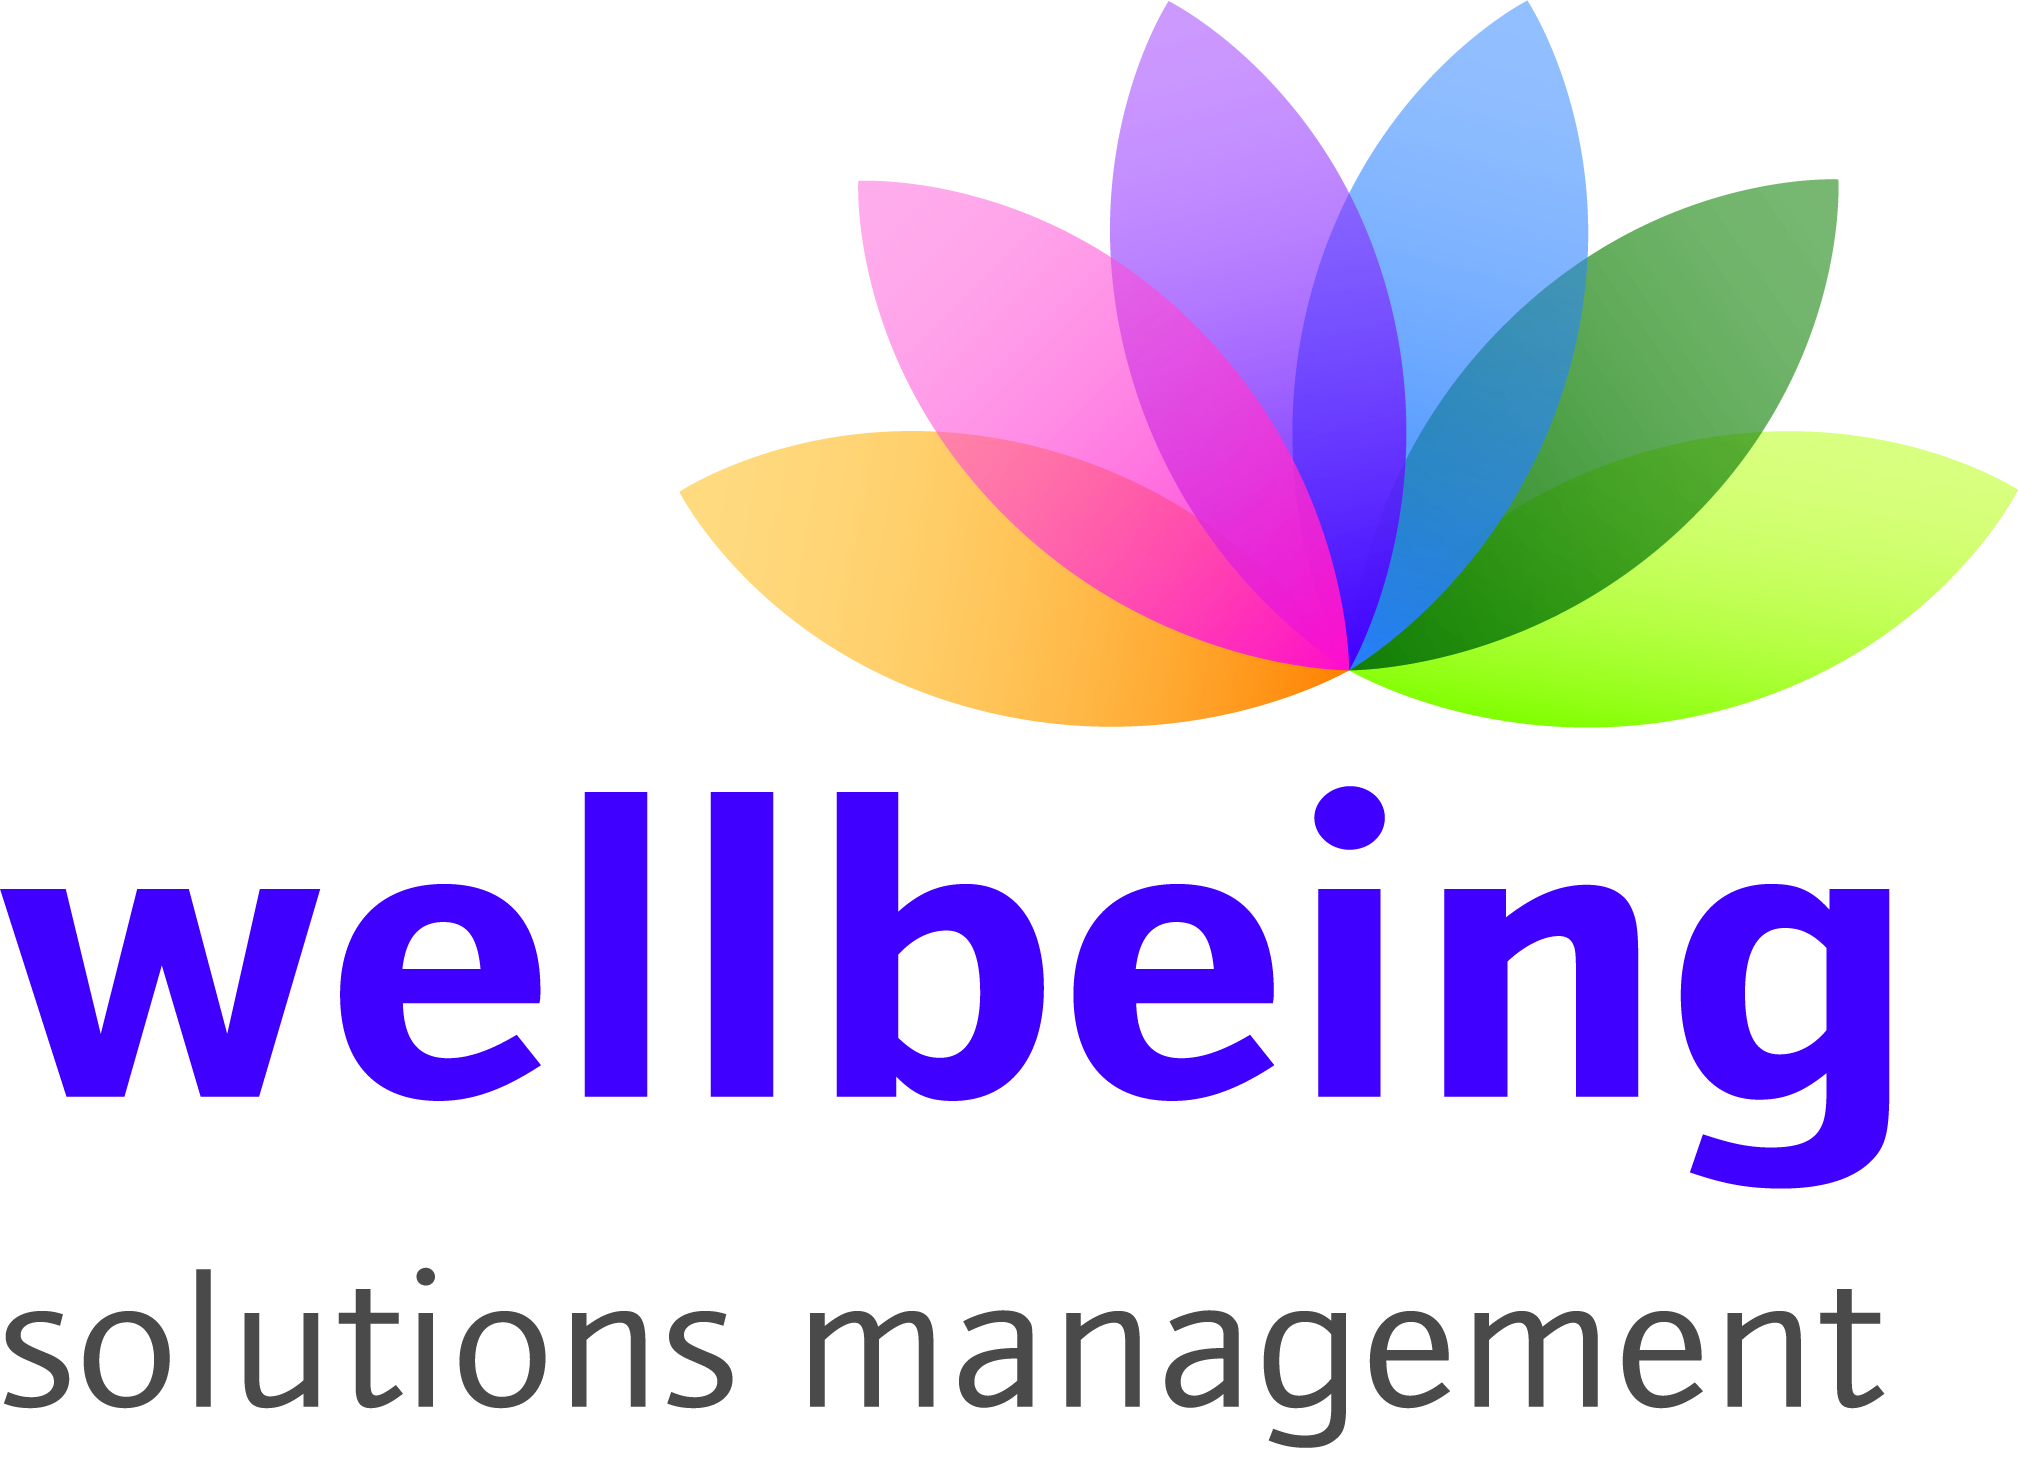 Wellbeing Solutions Management